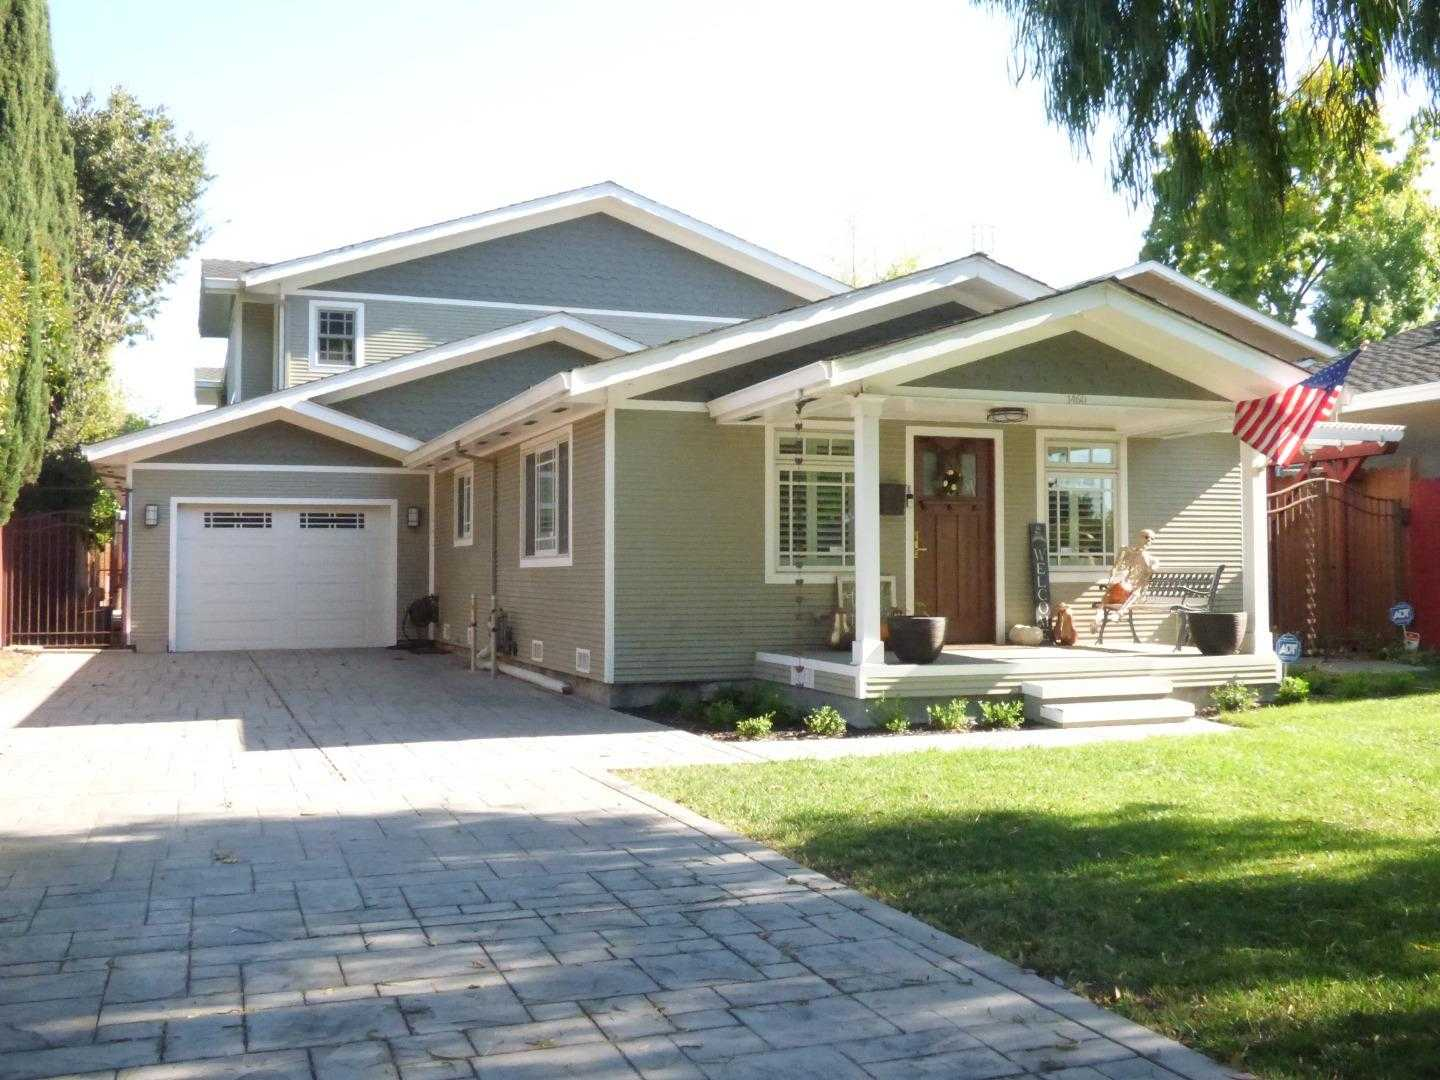 $1,900,000 - 3Br/3Ba -  for Sale in San Jose